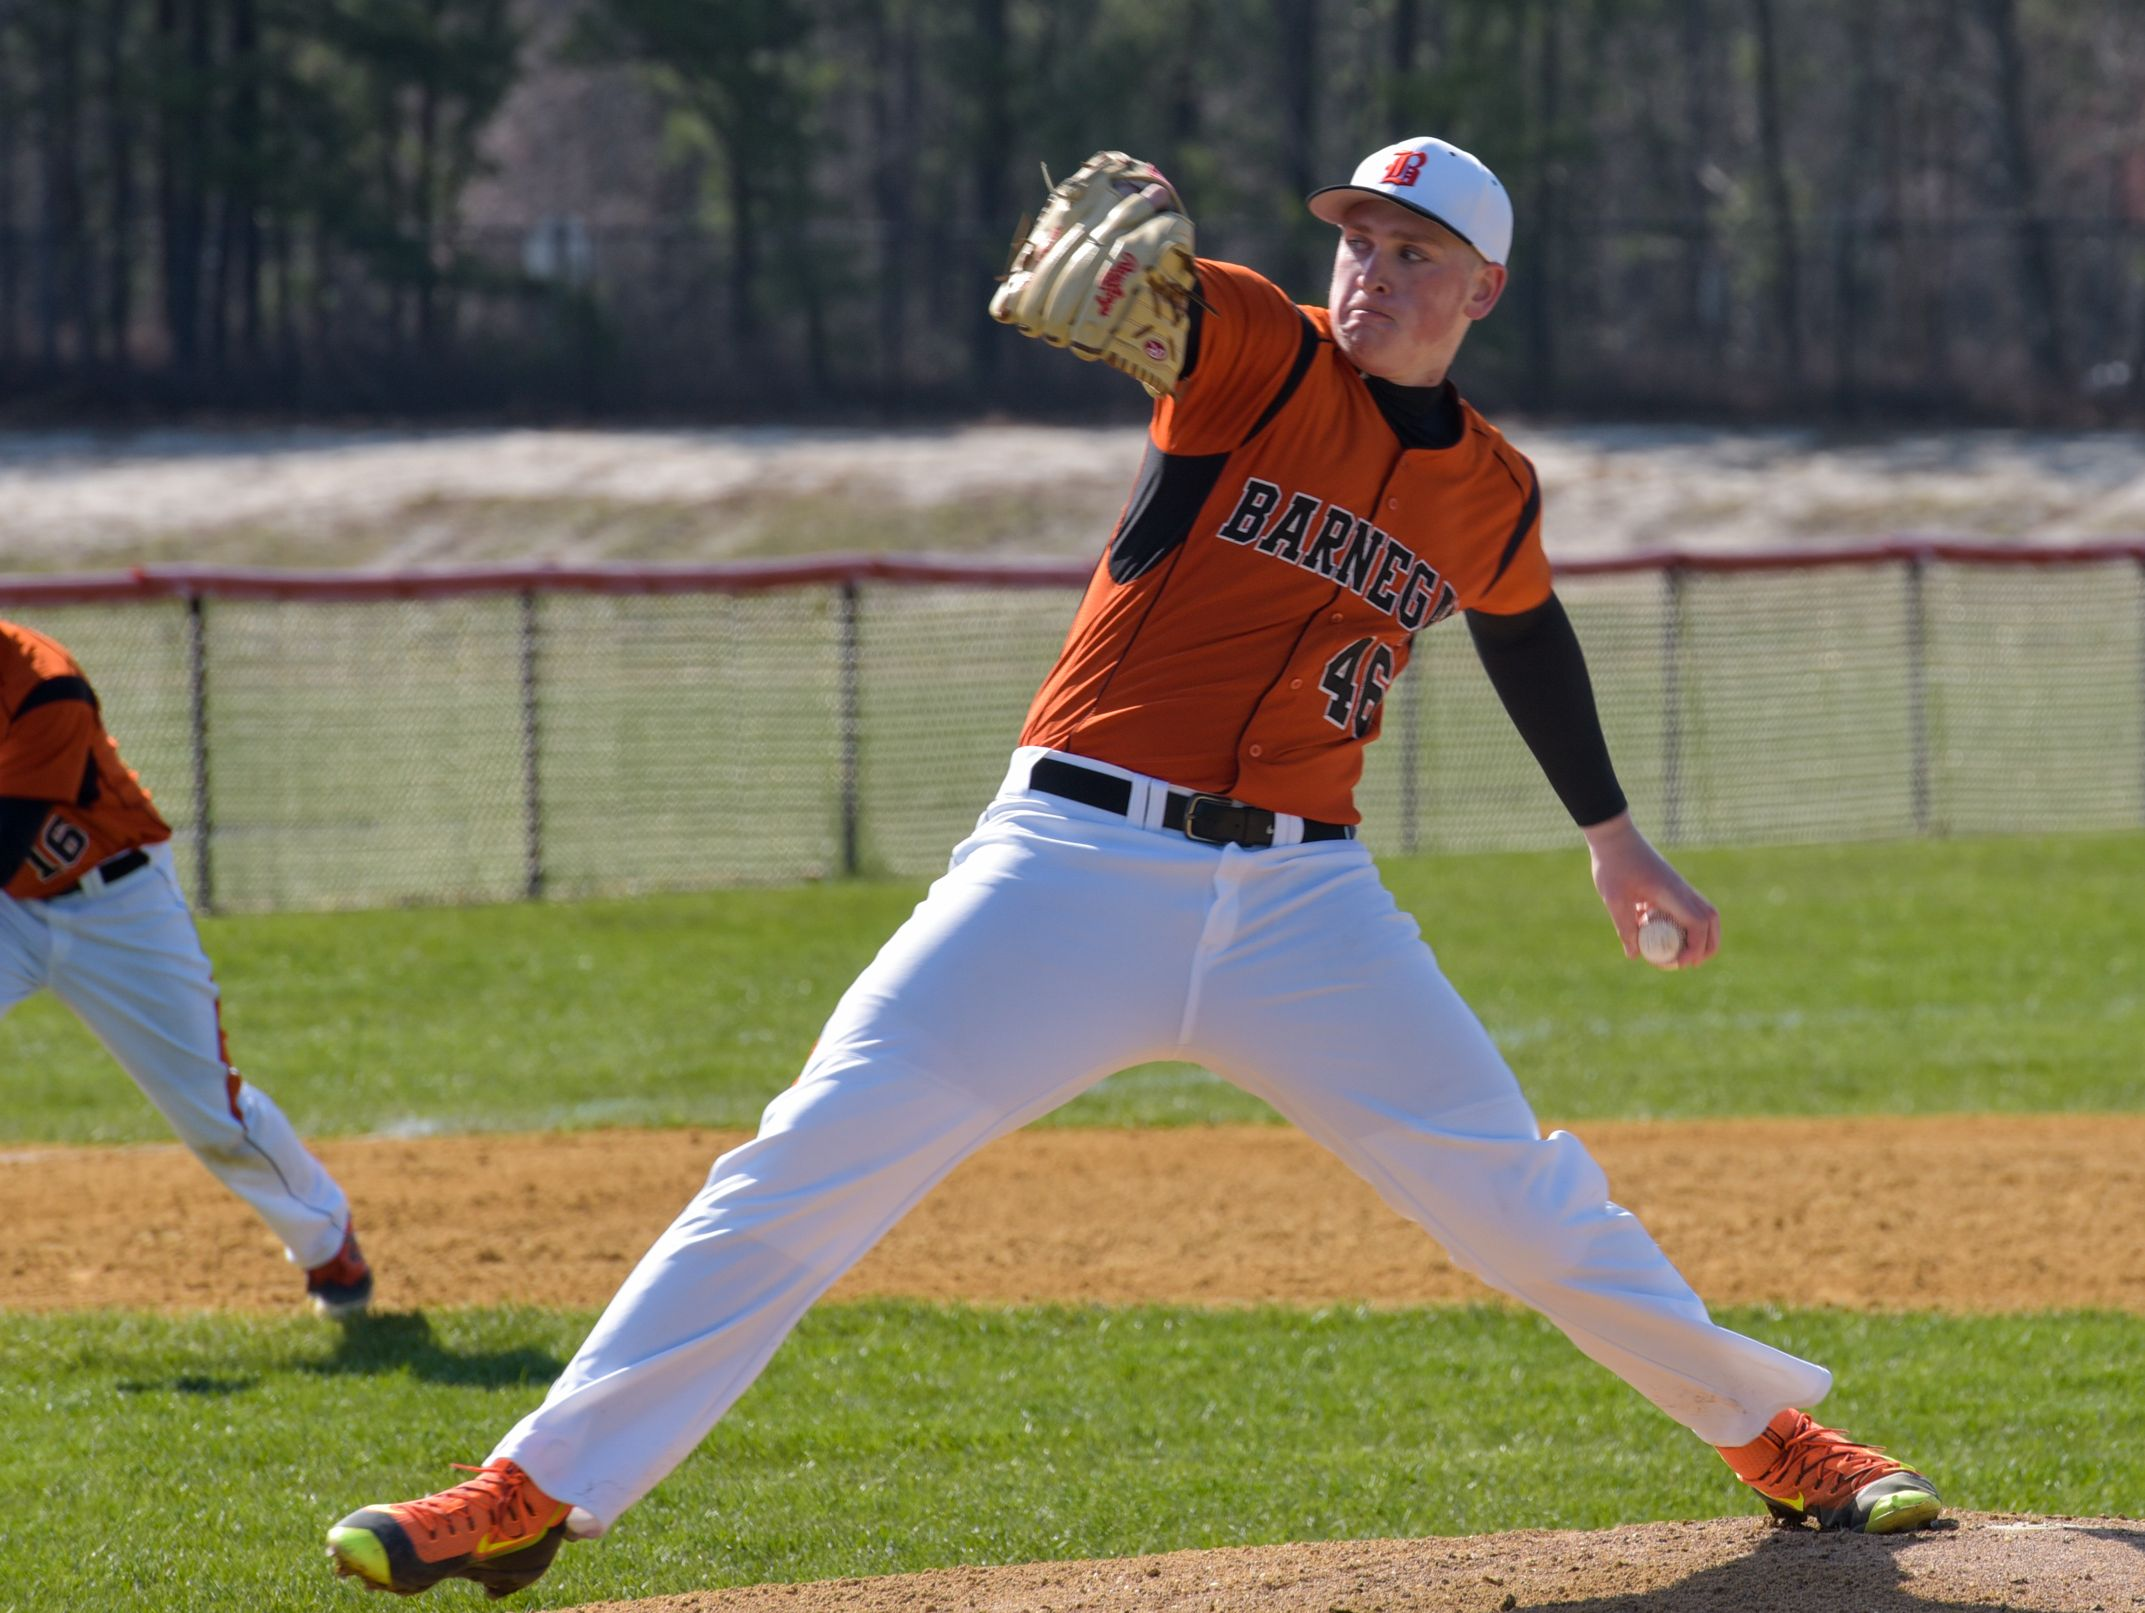 Barnegat senior left-hander Jason Groome had a successful return to the mound Saturday in an Ocean County Tournament first round game.